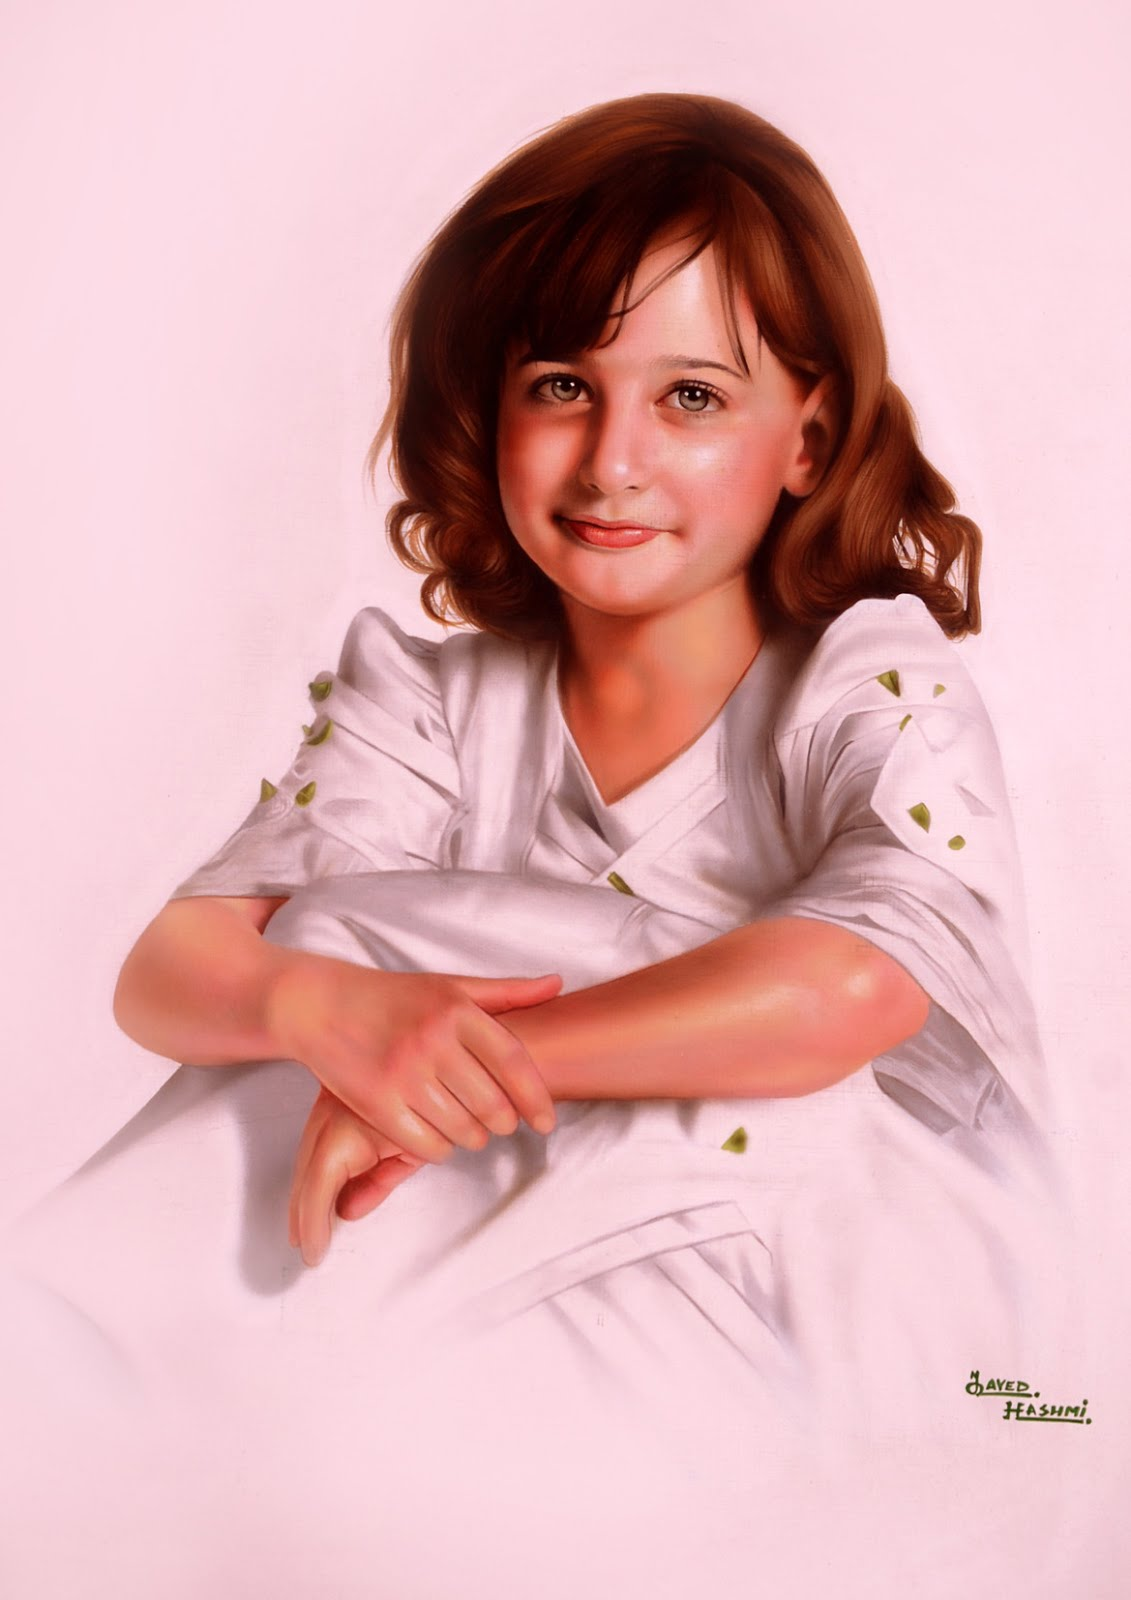 Beautiful Child Paintings